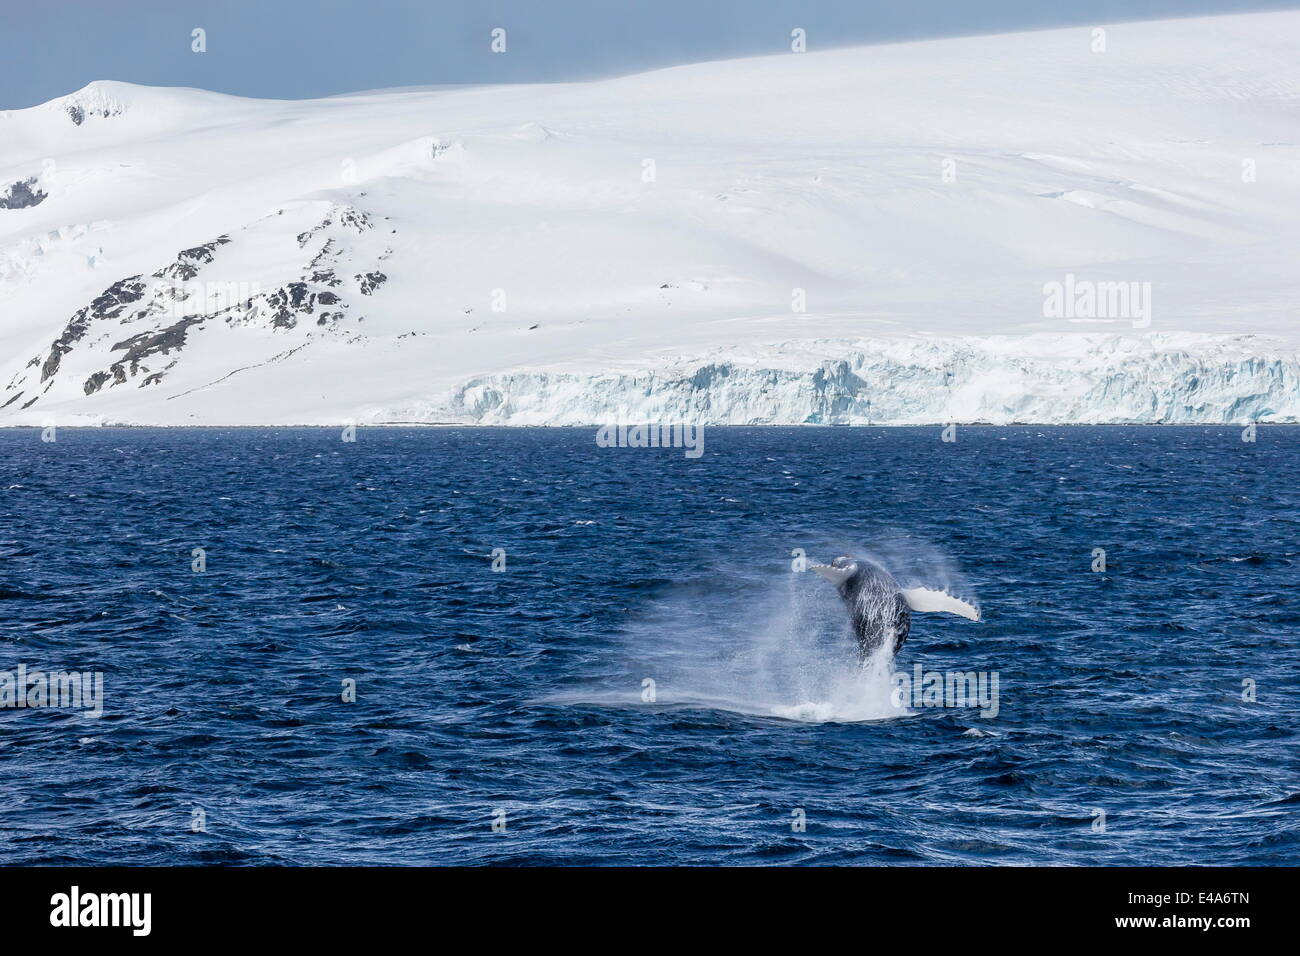 Humpback whale (Megaptera novaeangliae) breaching, Gerlache Strait, Antarctica, Polar Regions Stock Photo